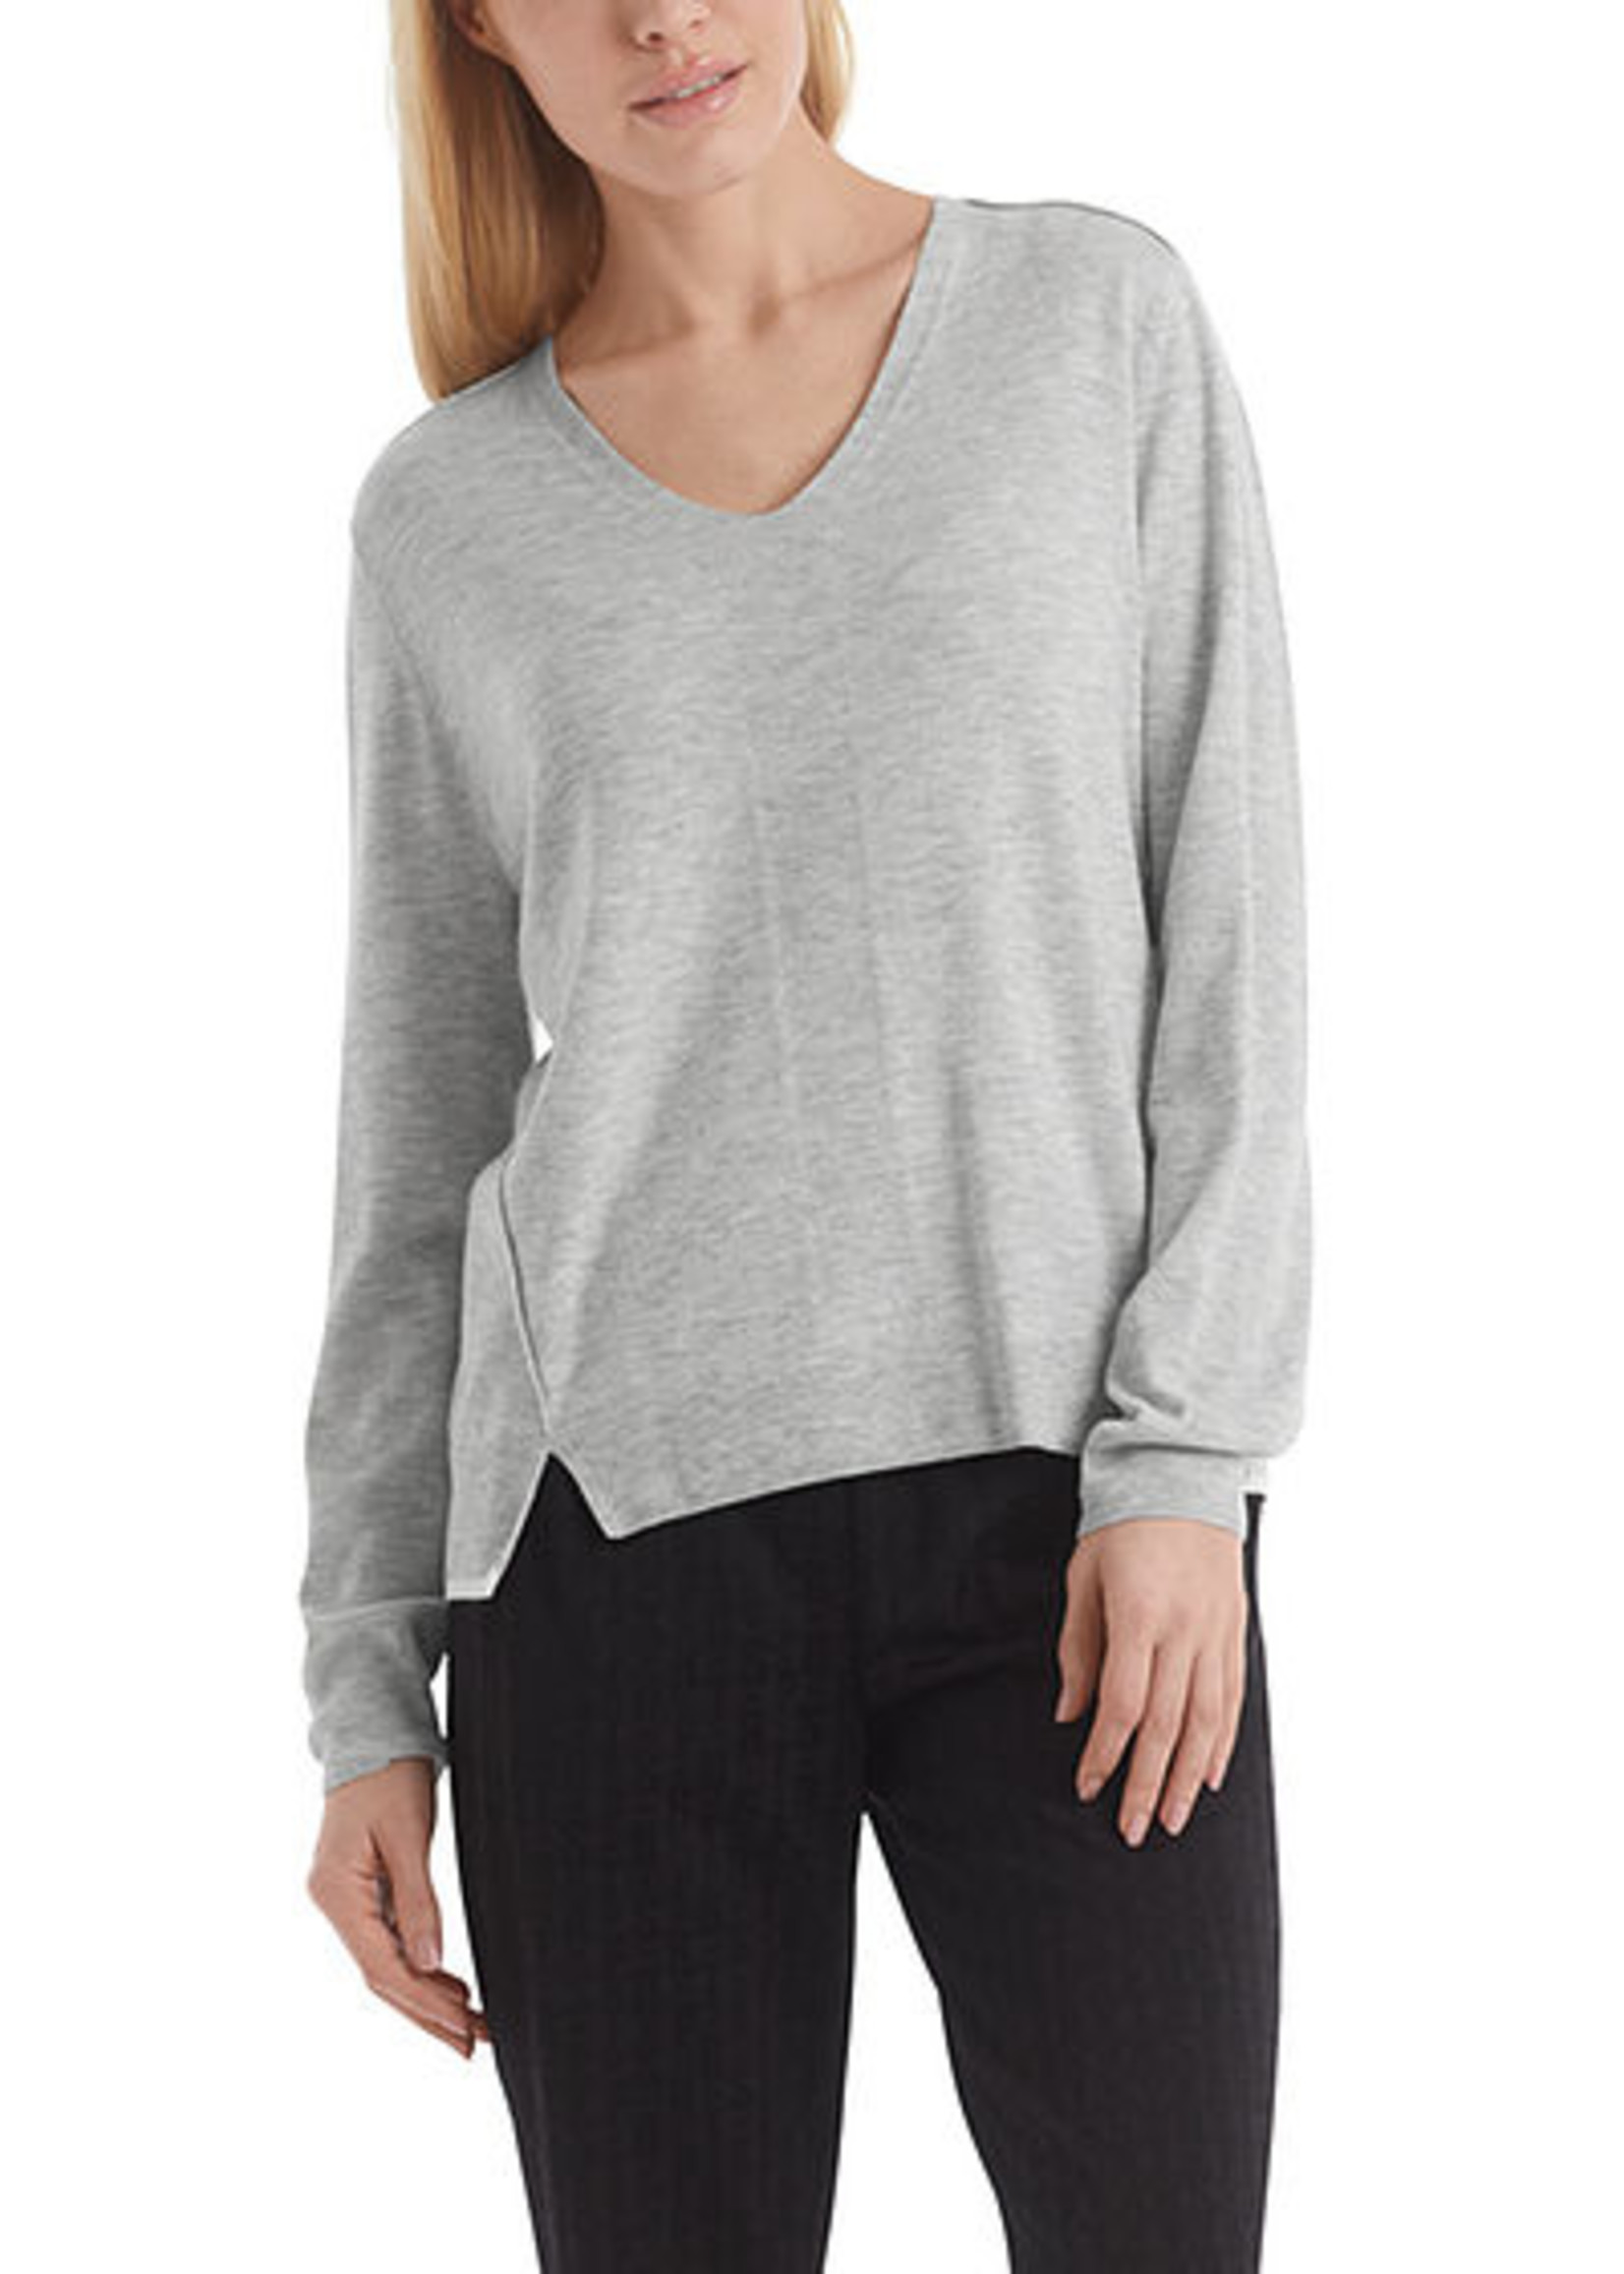 Marccain Sports Sweater RS 41.04 M80 silver grey